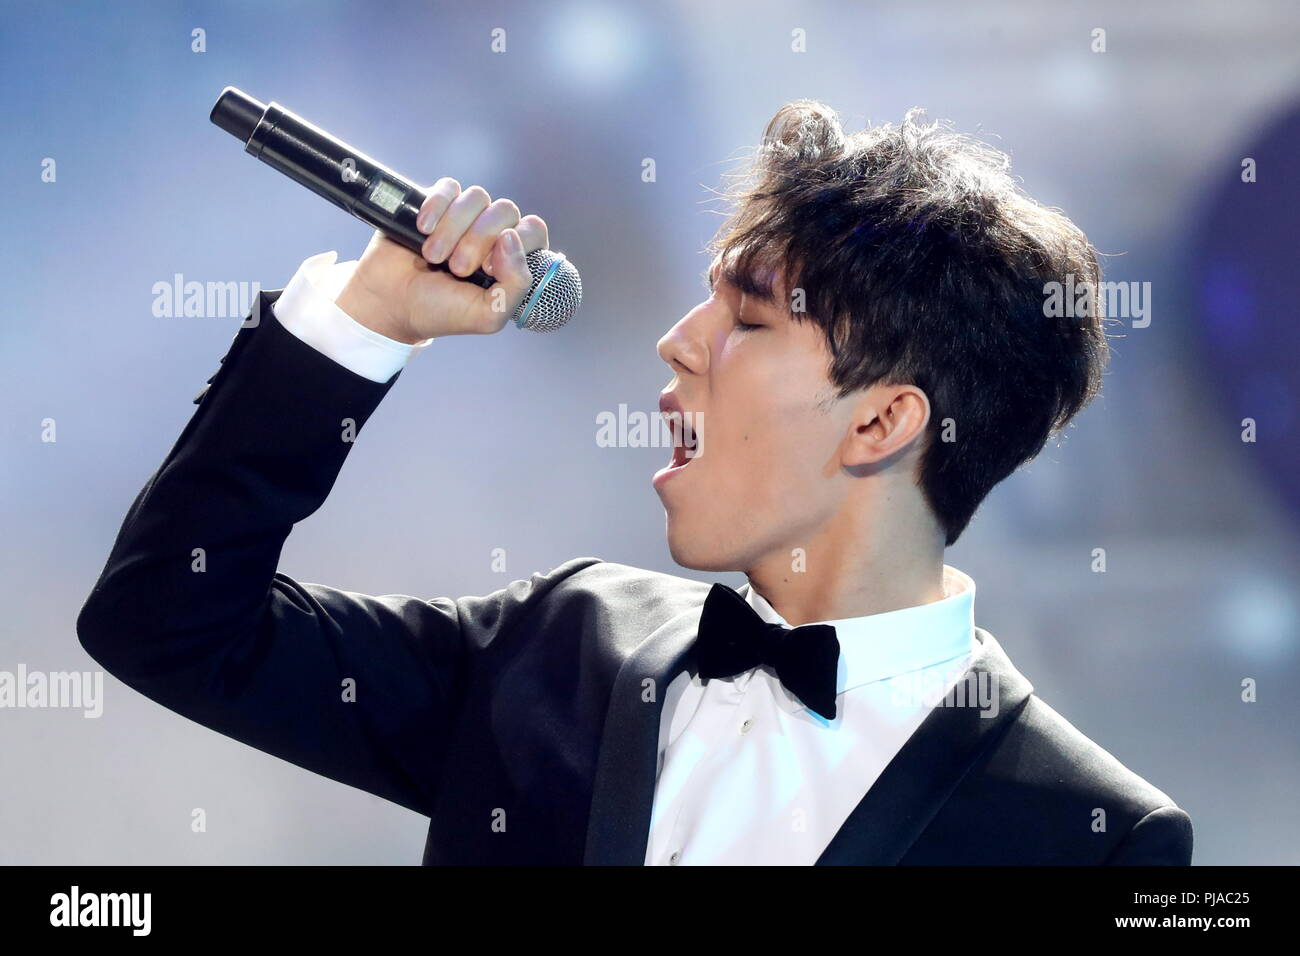 Dimash Stock Photos & Dimash Stock Images - Alamy